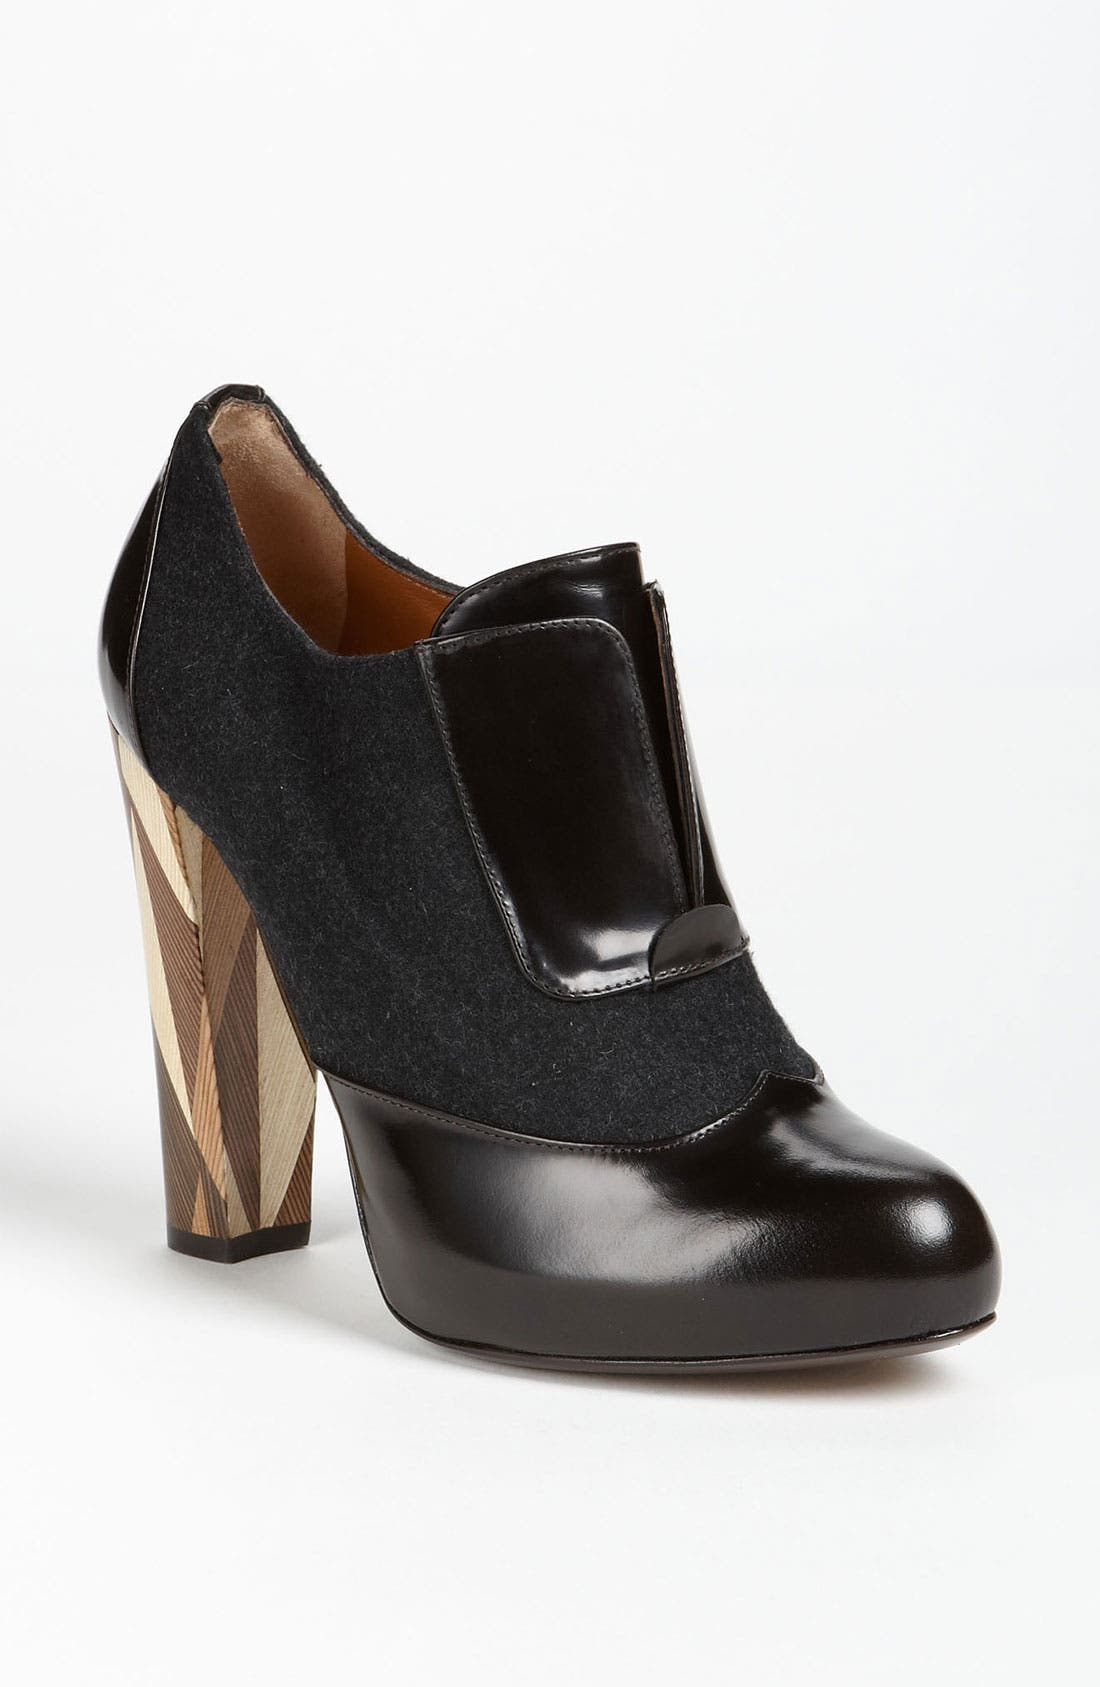 Main Image - Fendi 'Wuthering Heights' Wood Heel Bootie